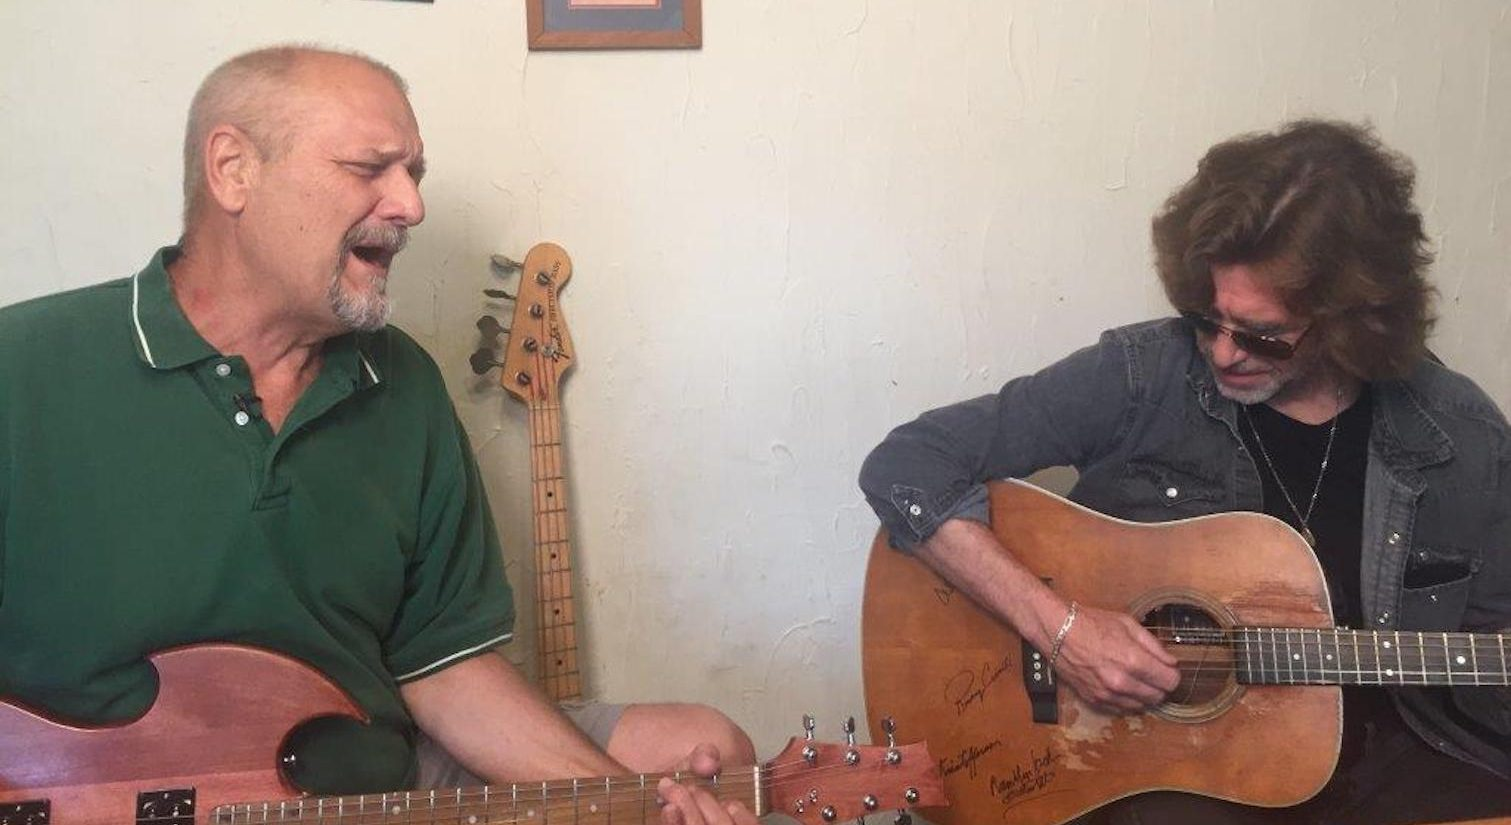 A rejuvenated Jim Bennett and his old bandmate John Flynn played a couple of songs for WHYY, including a rousing rendition of